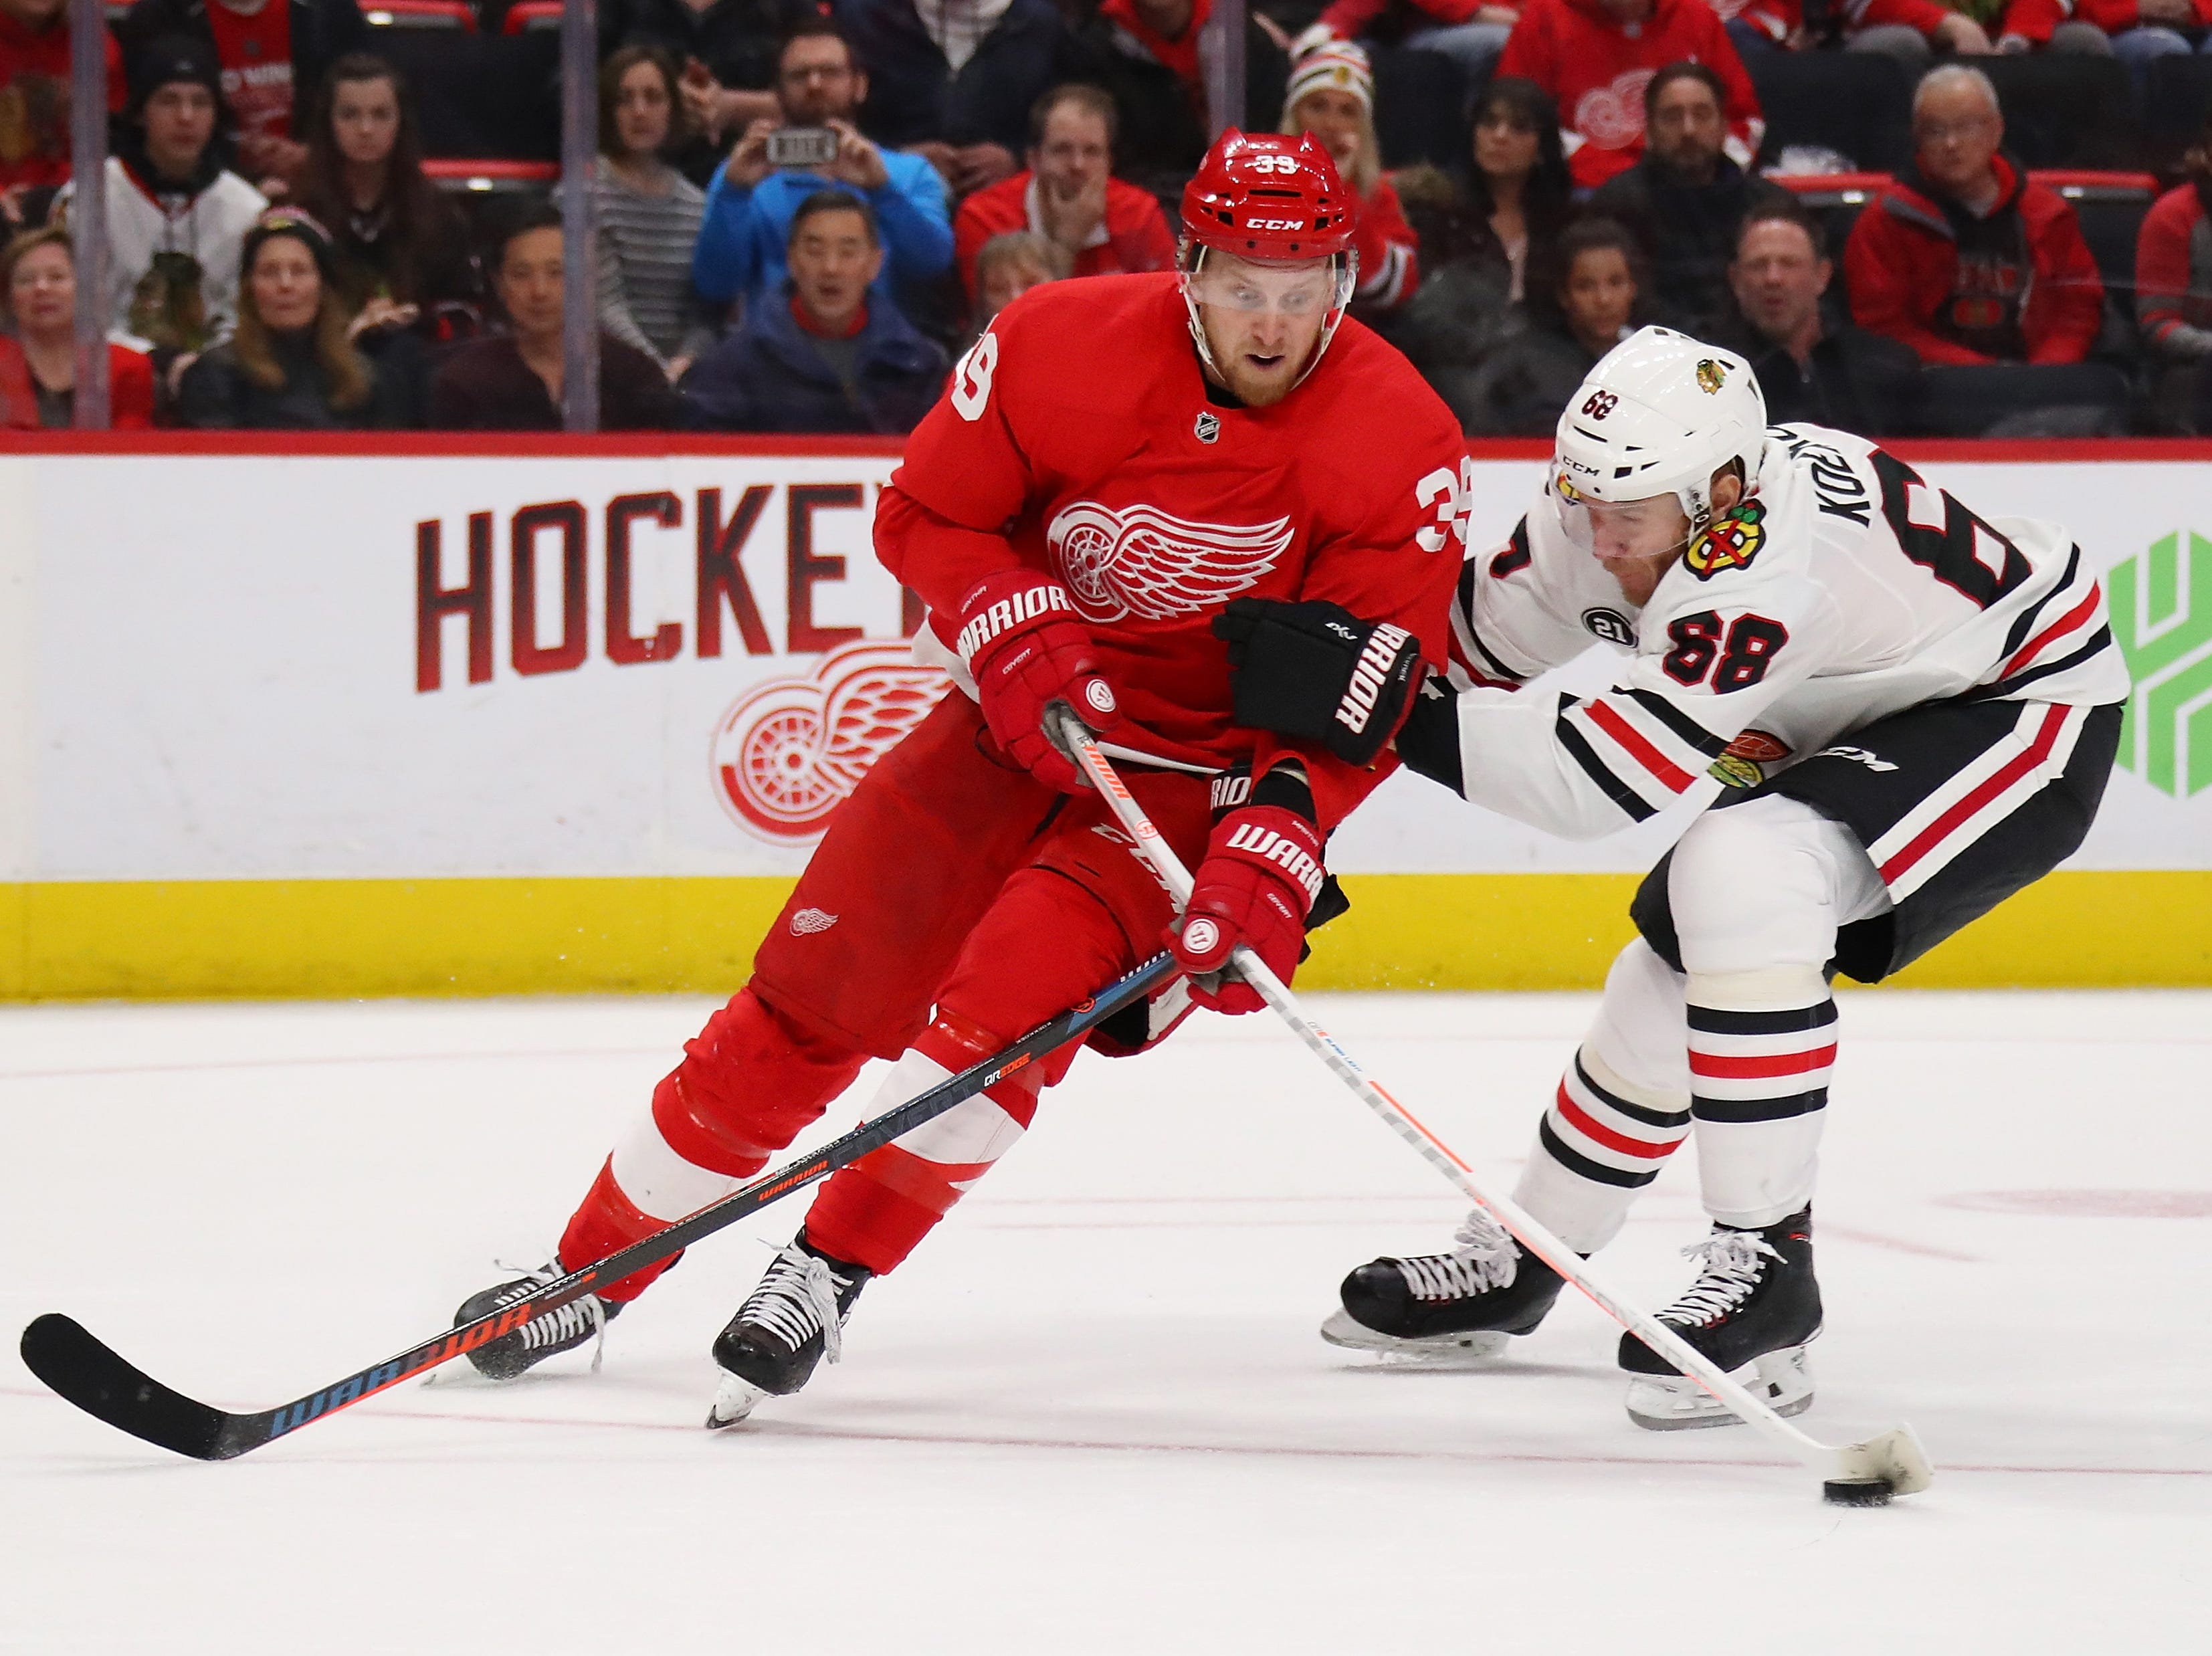 Red Wings forward Anthony Mantha tries to get a shot off next to Blackhawks defenseman Slater Koekkoek during overtime of the Wings' 5-4 loss on Wednesday, Feb. 20, 2019, at Little Caesars Arena.